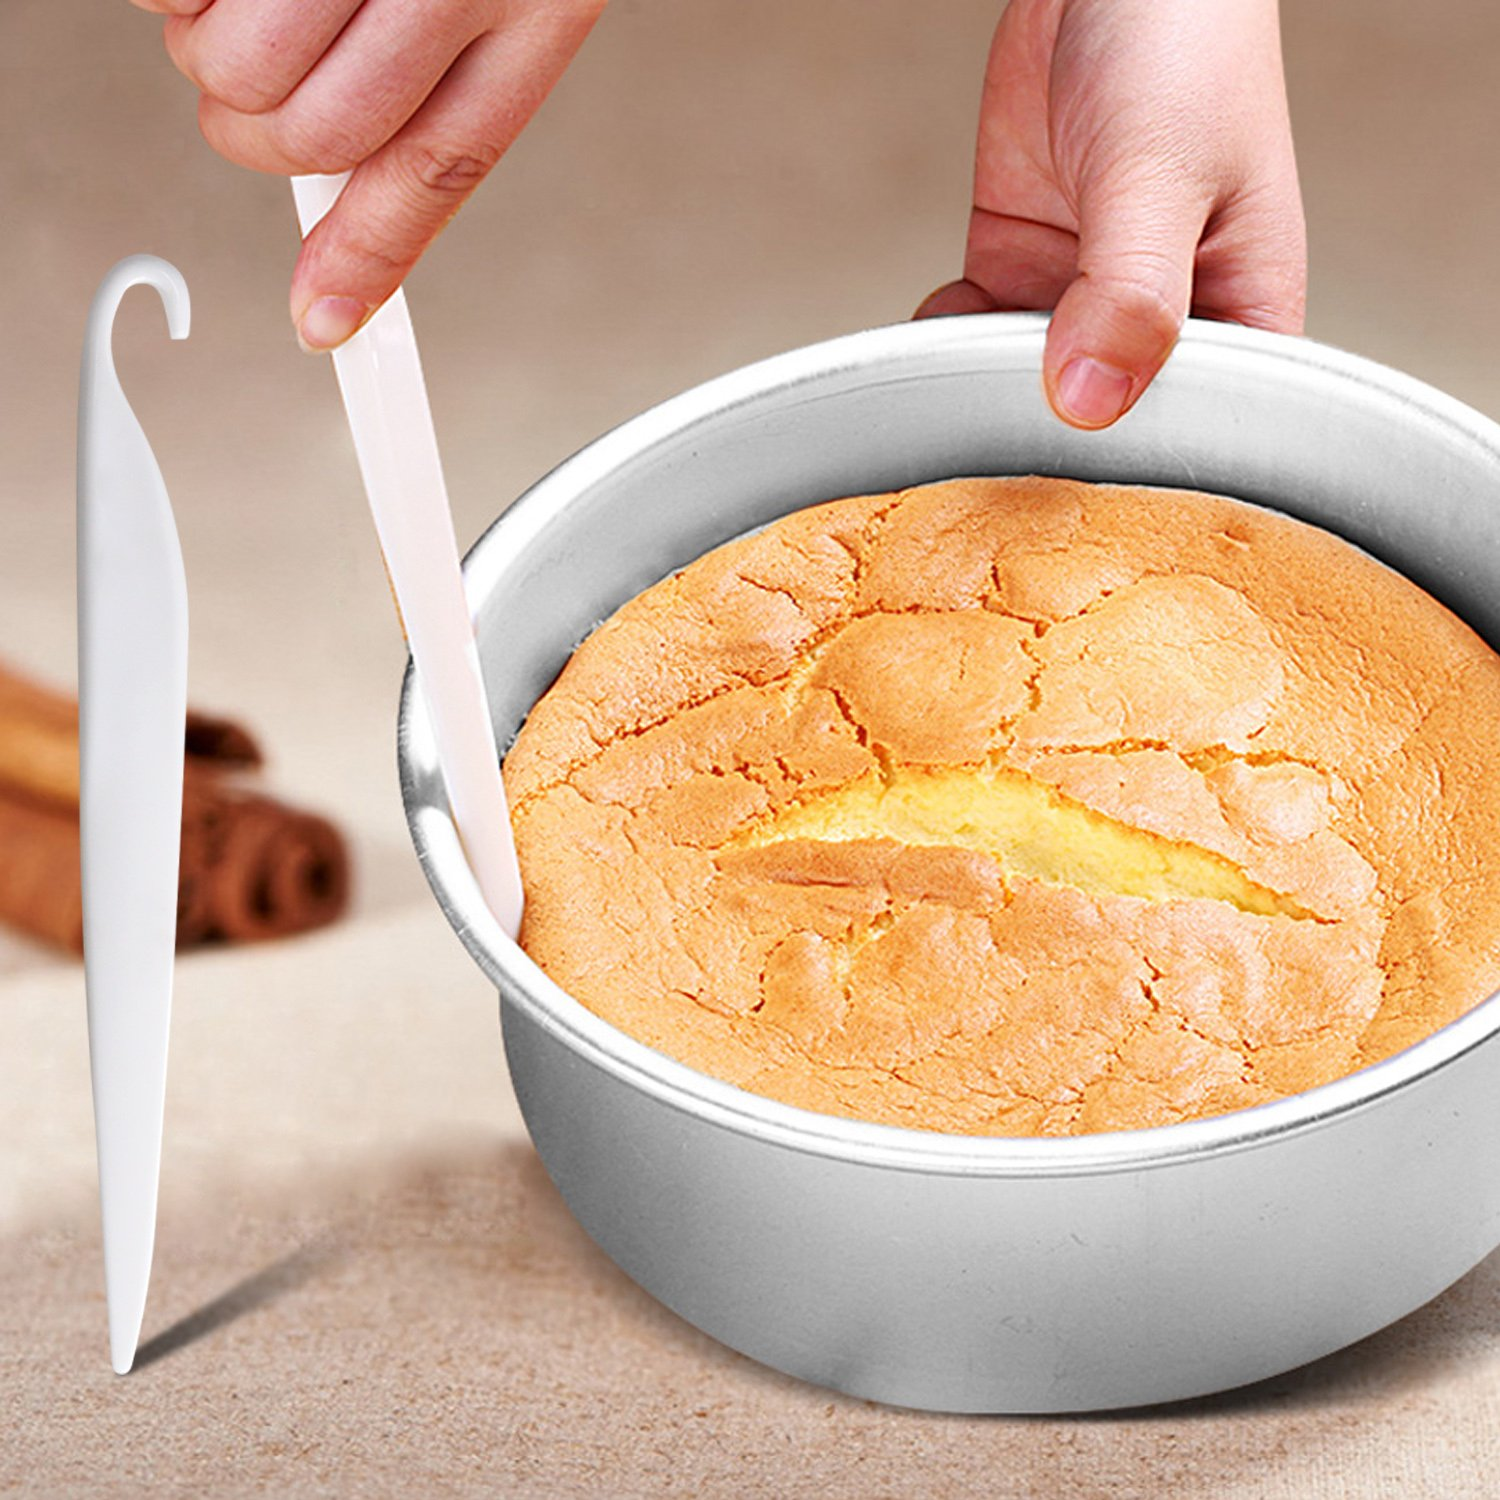 9 Inch Springform Cake Pans 24 Piping Nozzles Cake Stand 11 Inch Cake Turntable,2 Icing Spatula and 3 Icing Smoother,Pastry Bag,Cutter,Cheese Spatula Cake Decorating Kit